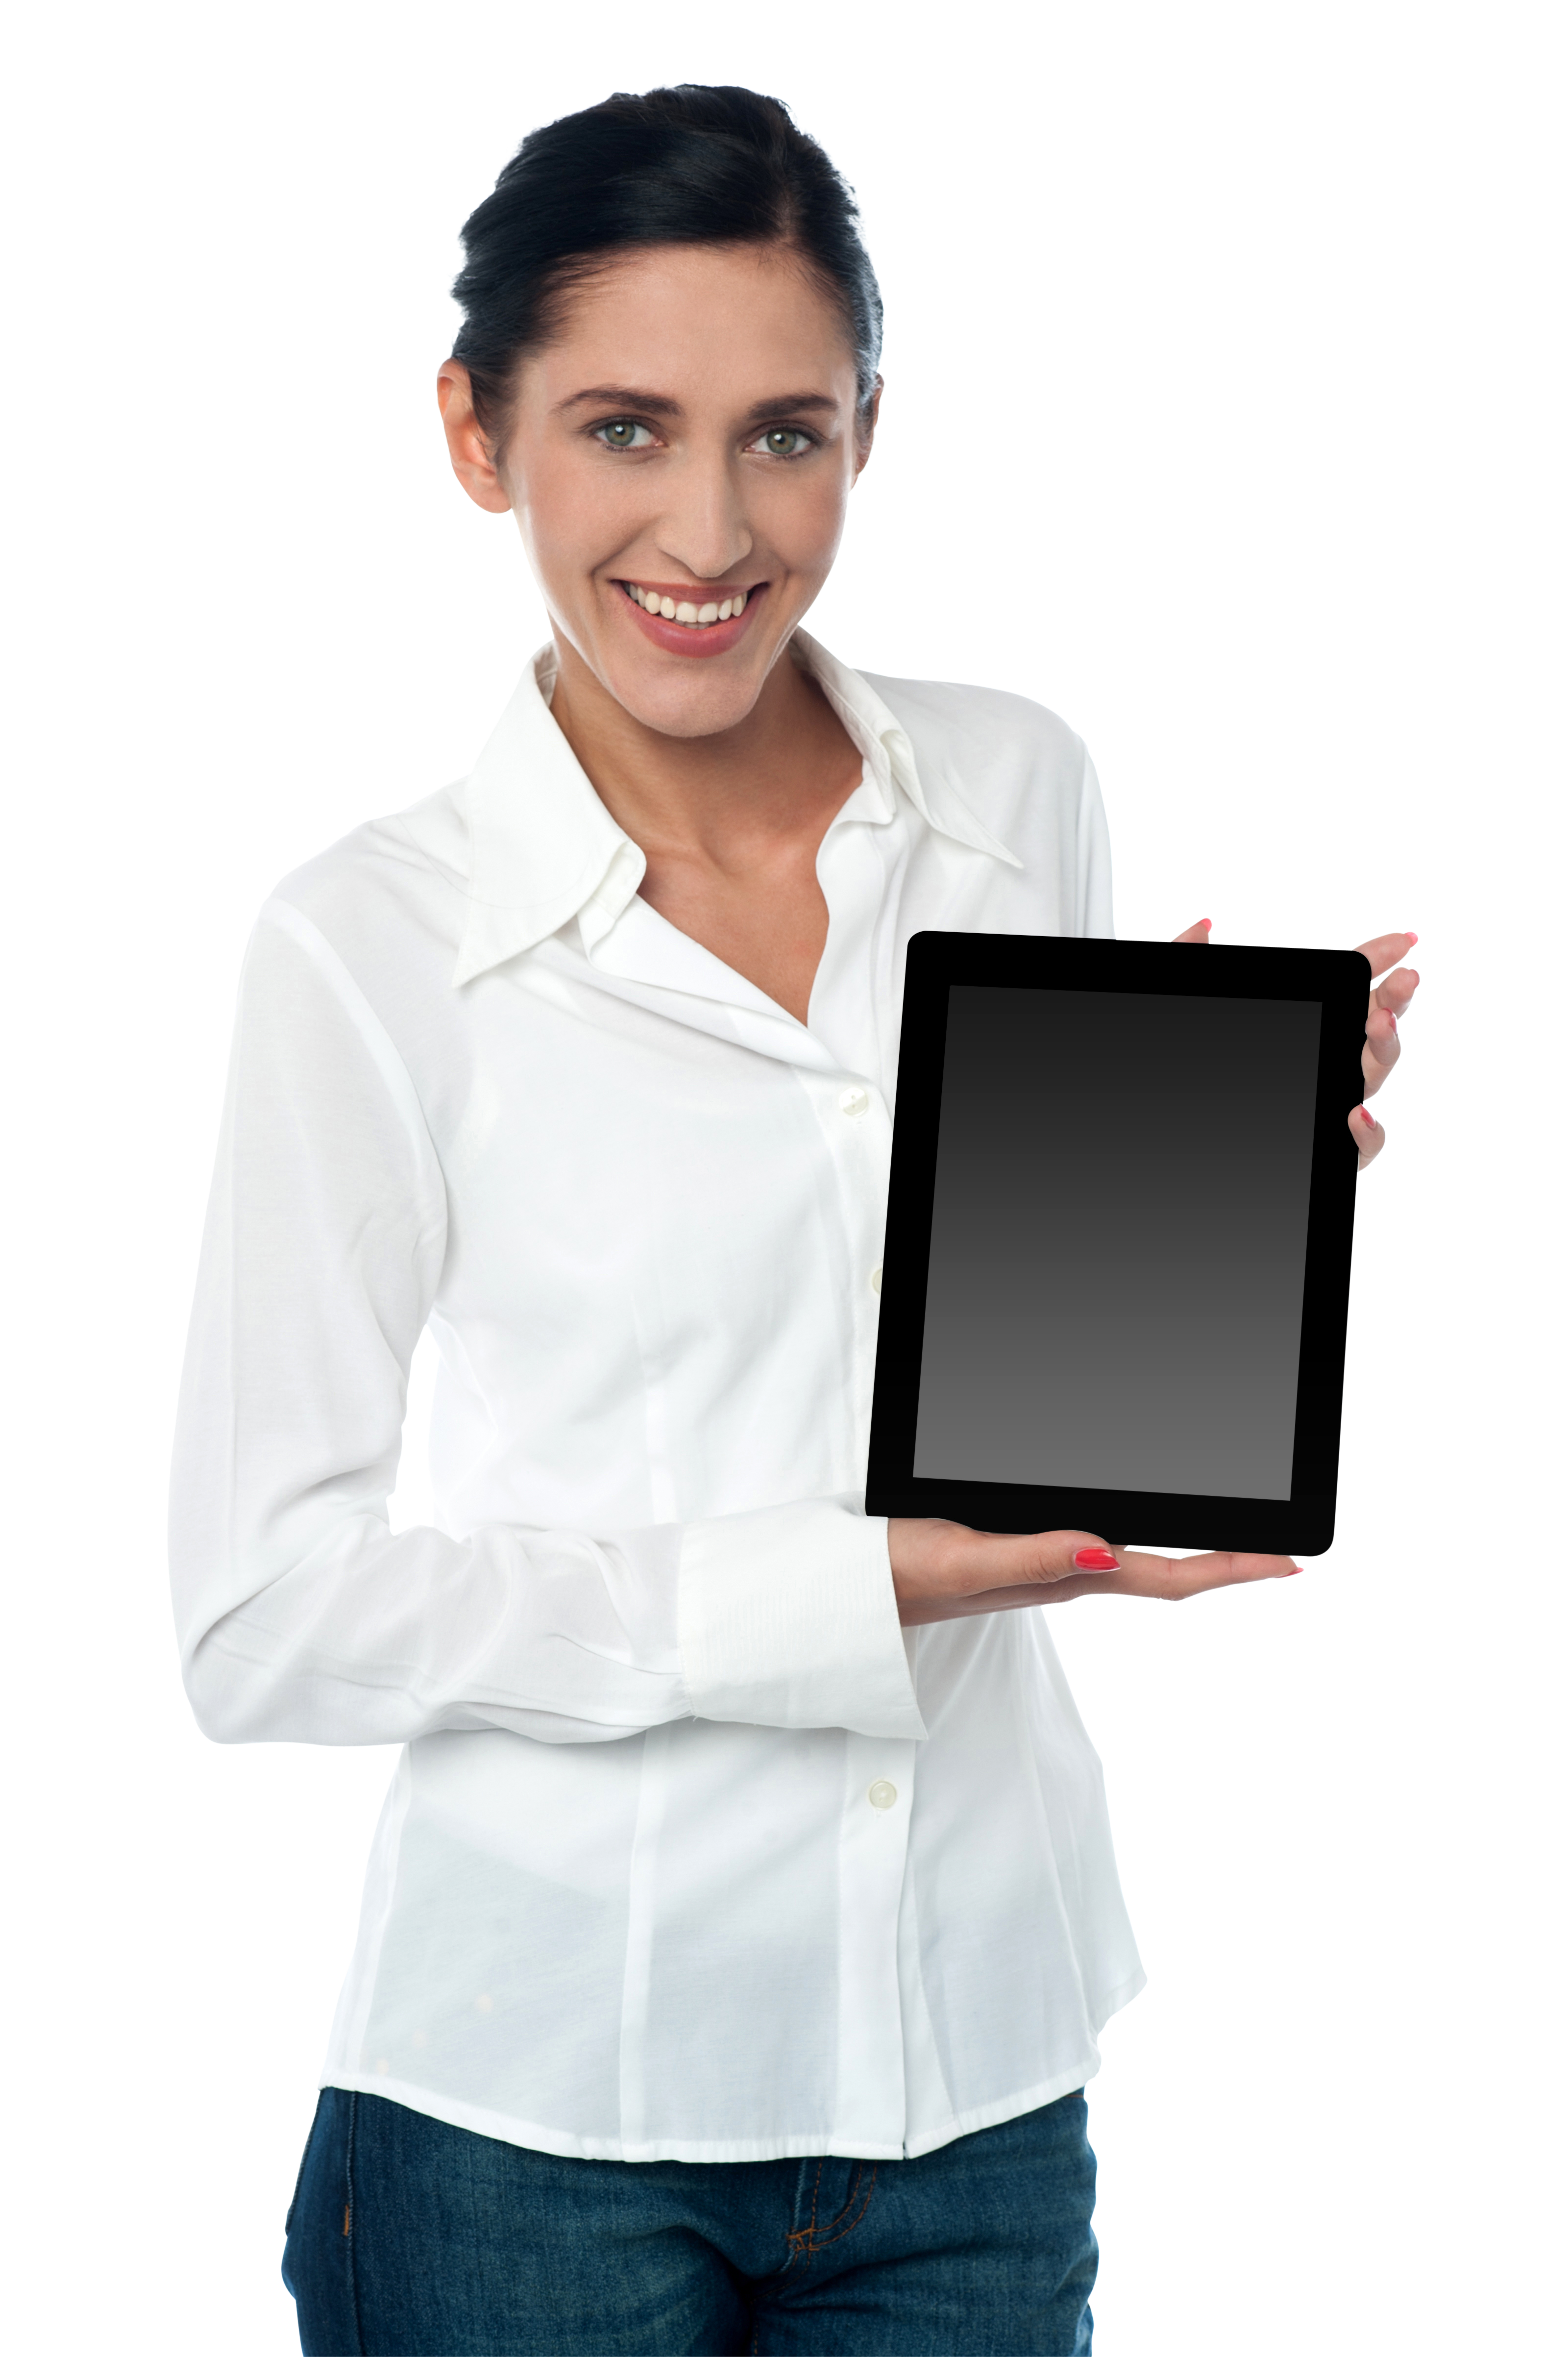 Woman Holding iPad PNG Image